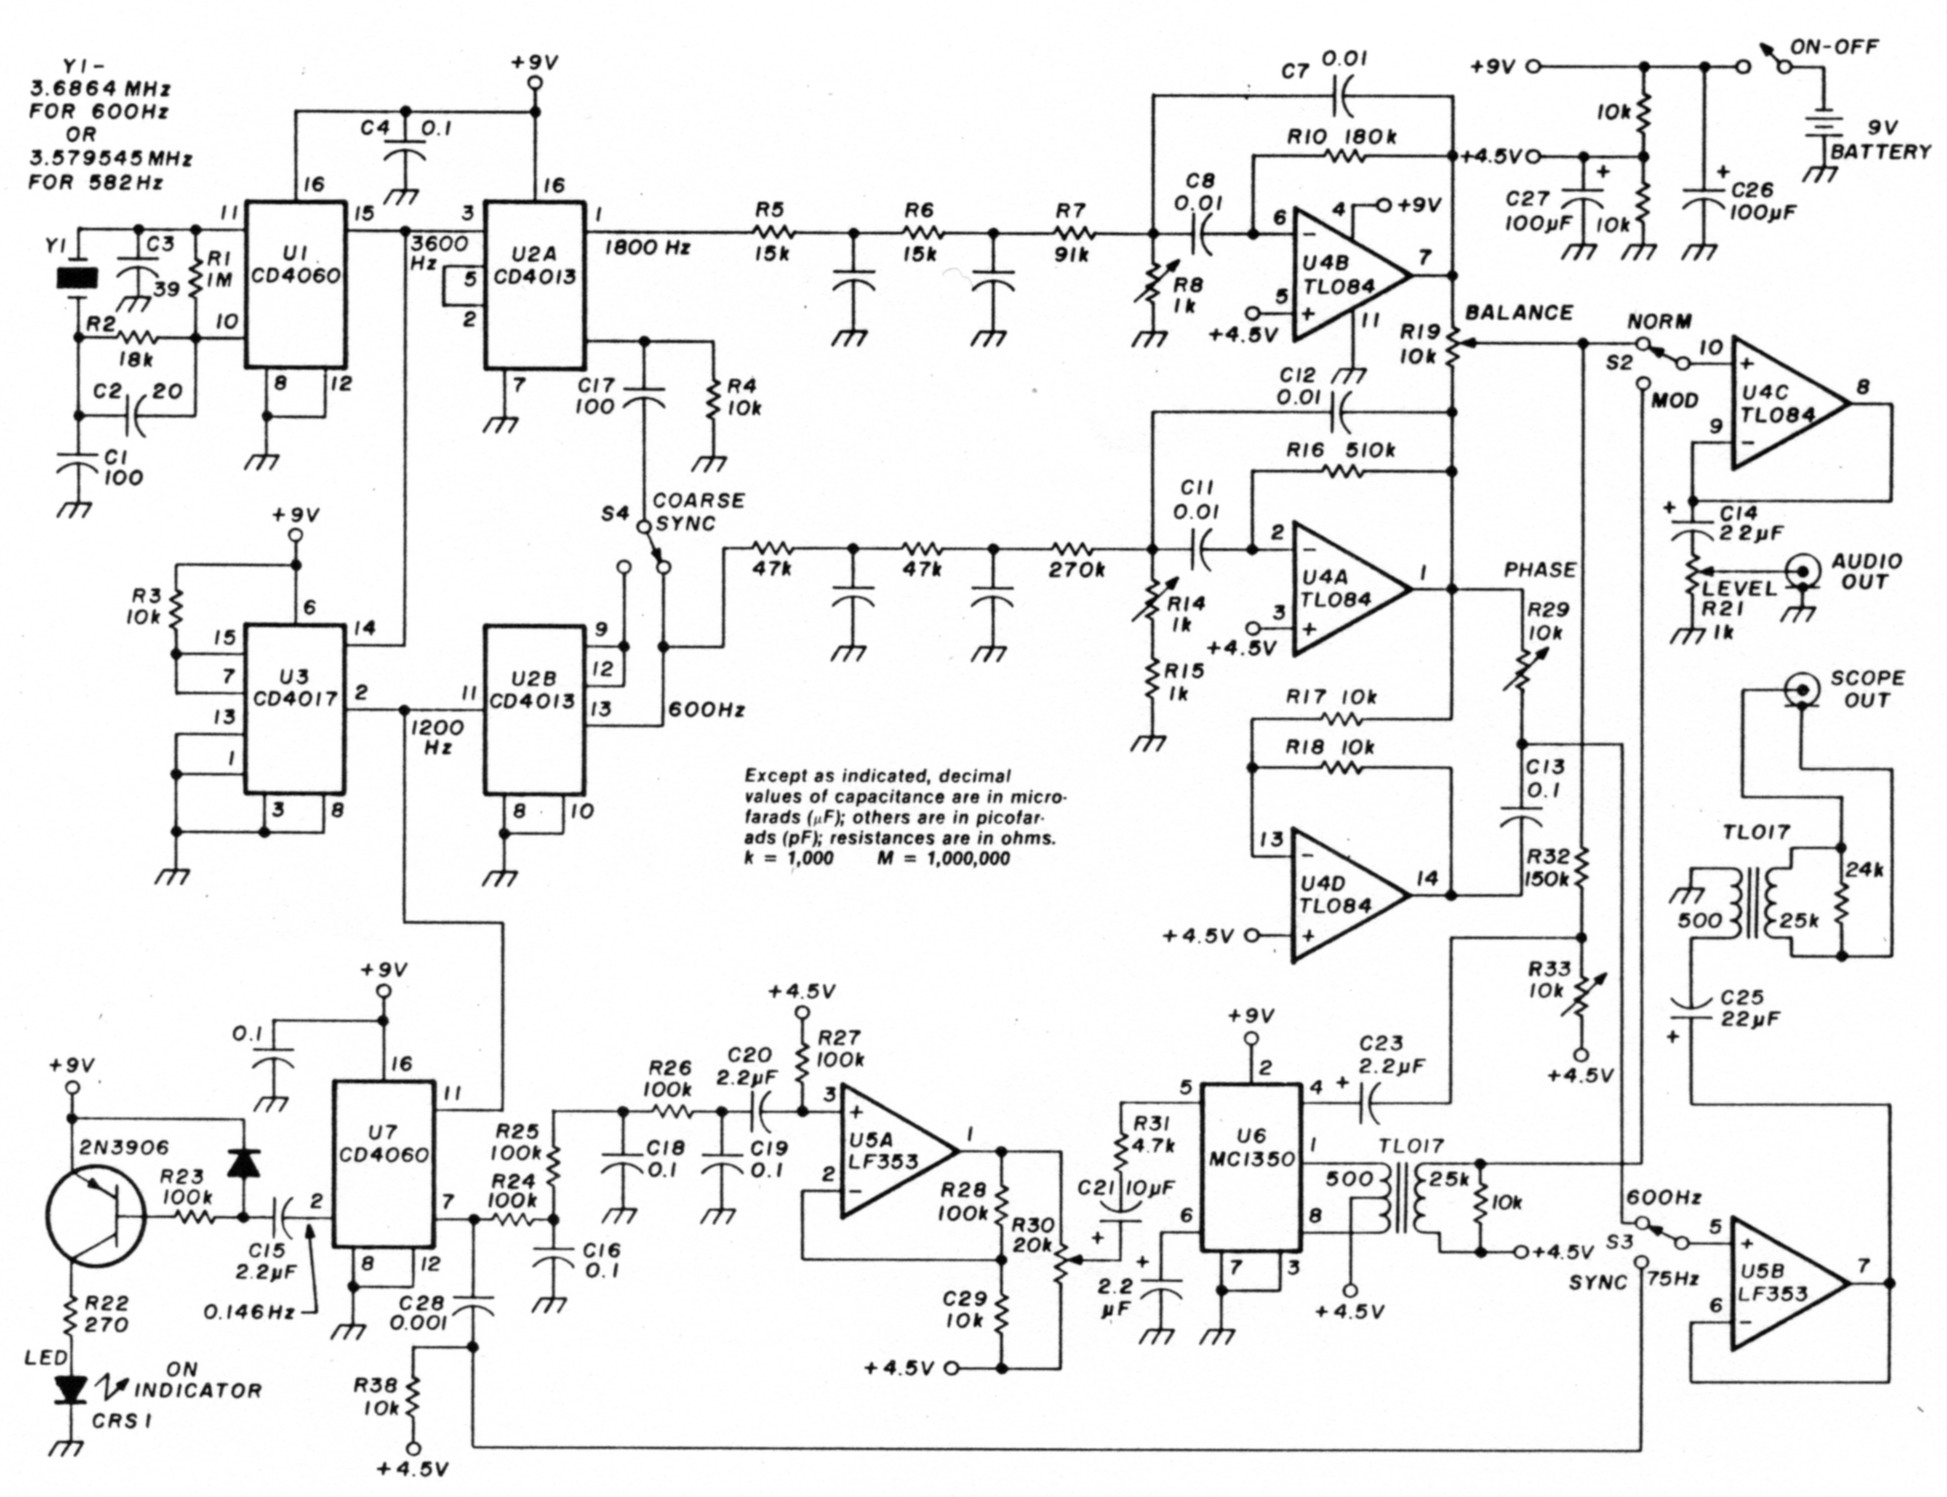 oscillator circuit schematic diagram html with Index on Diagrama Circuito Piano Electronico besides Index moreover Induction Heater Circuit For Labs And furthermore Thread 217398 1 furthermore 2011 03 01 archive.